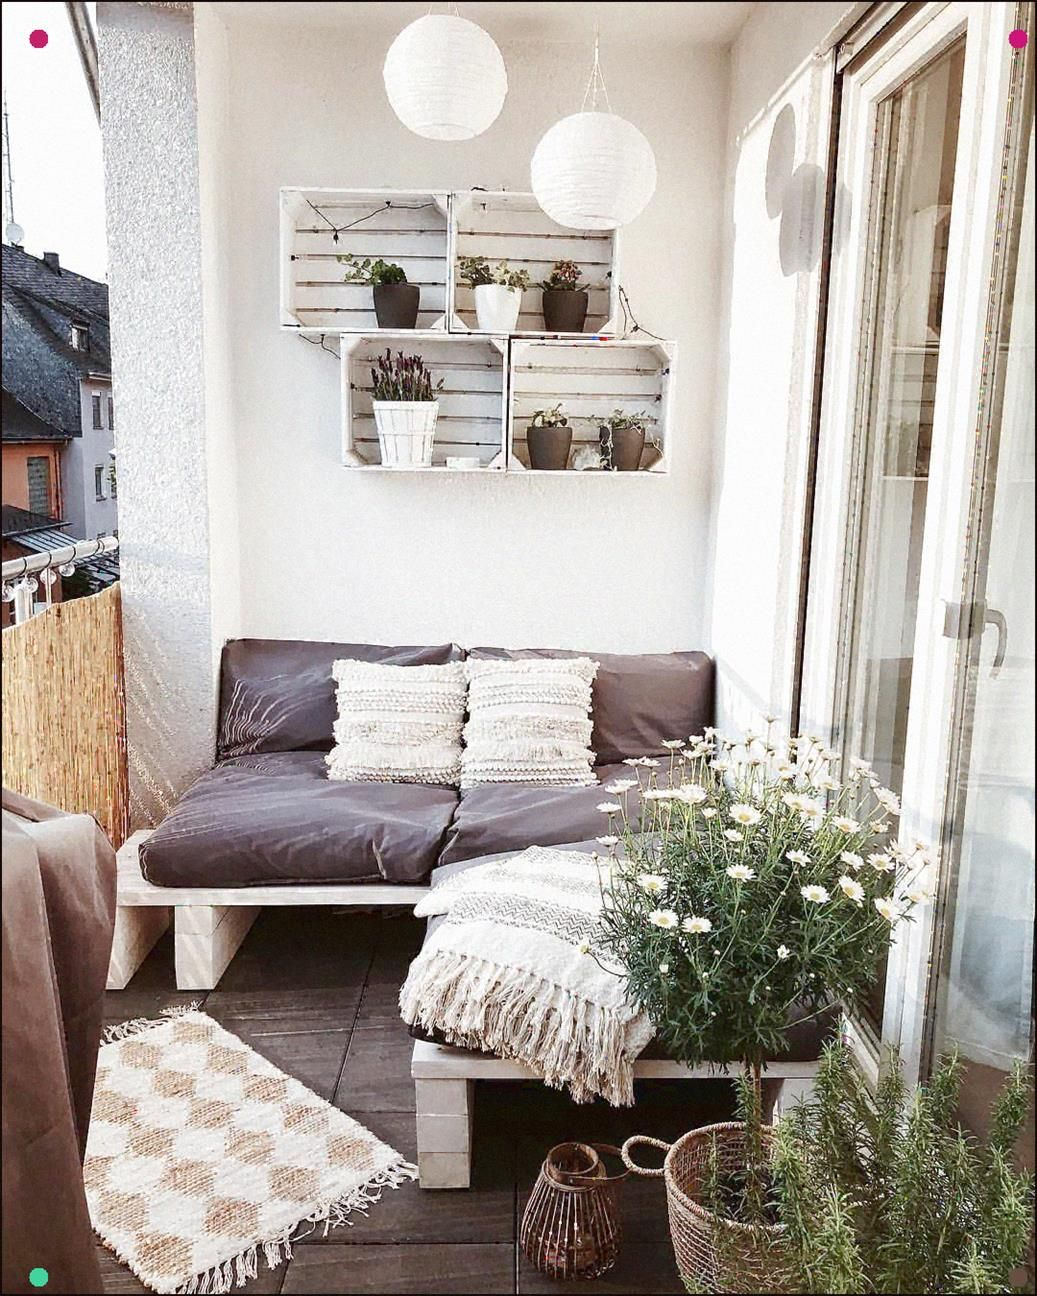 Unser Kleiner Aber Feiner Balkon . . . #Smallbalcony #Balcony #Balconydecor #Balkonien #Decoration #Homedecor #Home #Homesweethome #Today